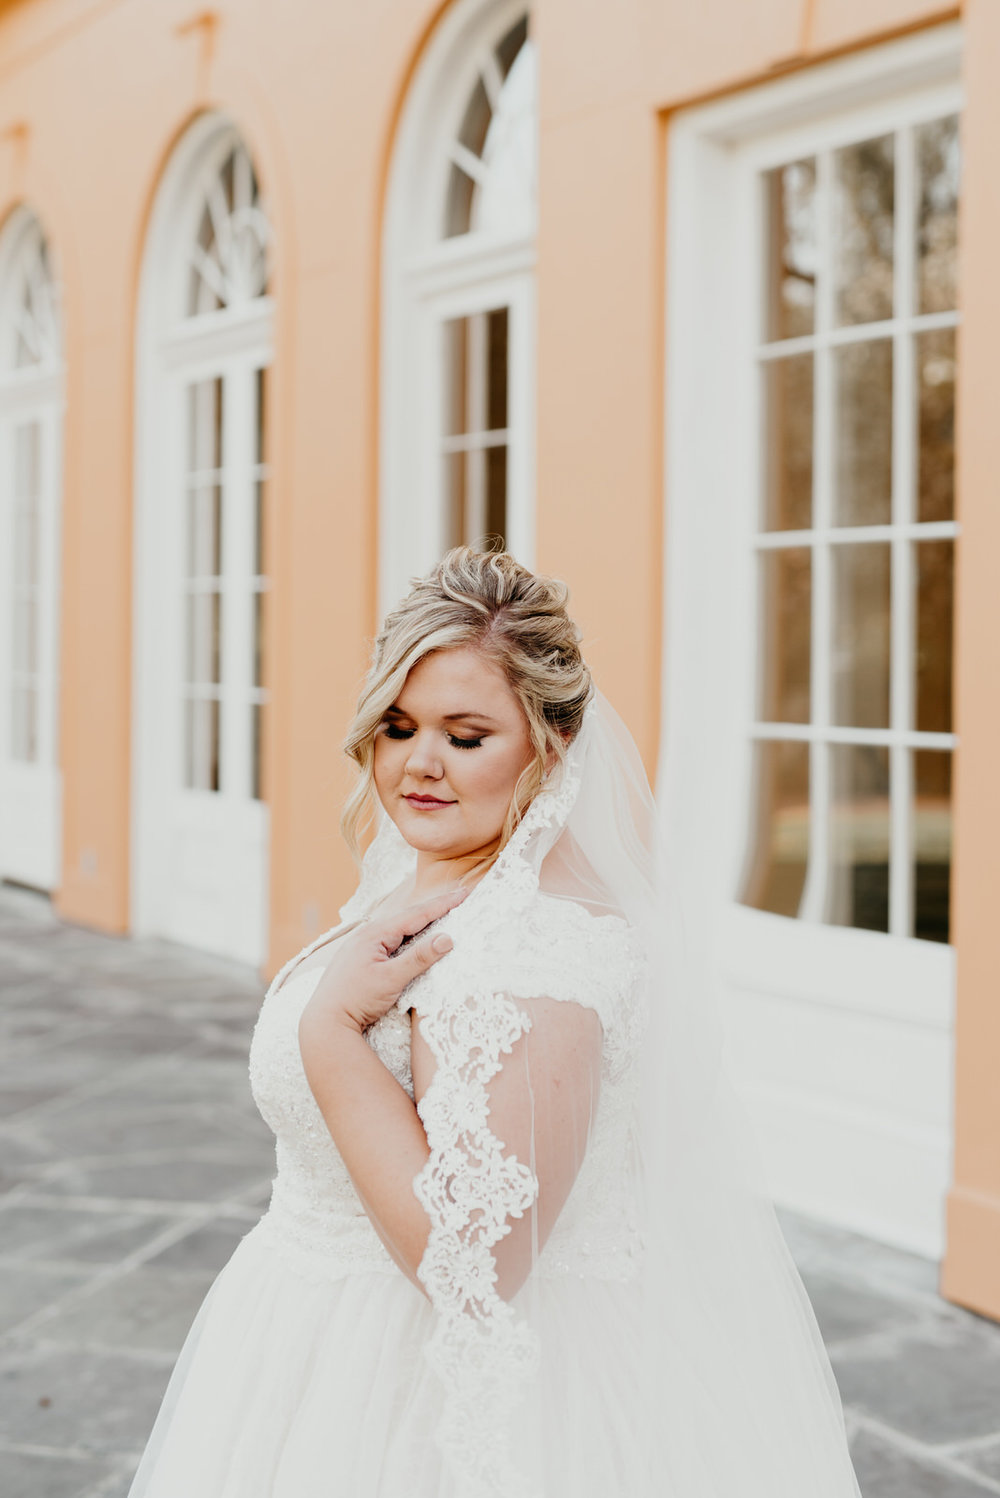 Bridal Session in City Park and New Orleans Botanical Garden in Louisiana. Photographed by Baton Rouge Wedding Photographer, Magnolia and Grace Photography.